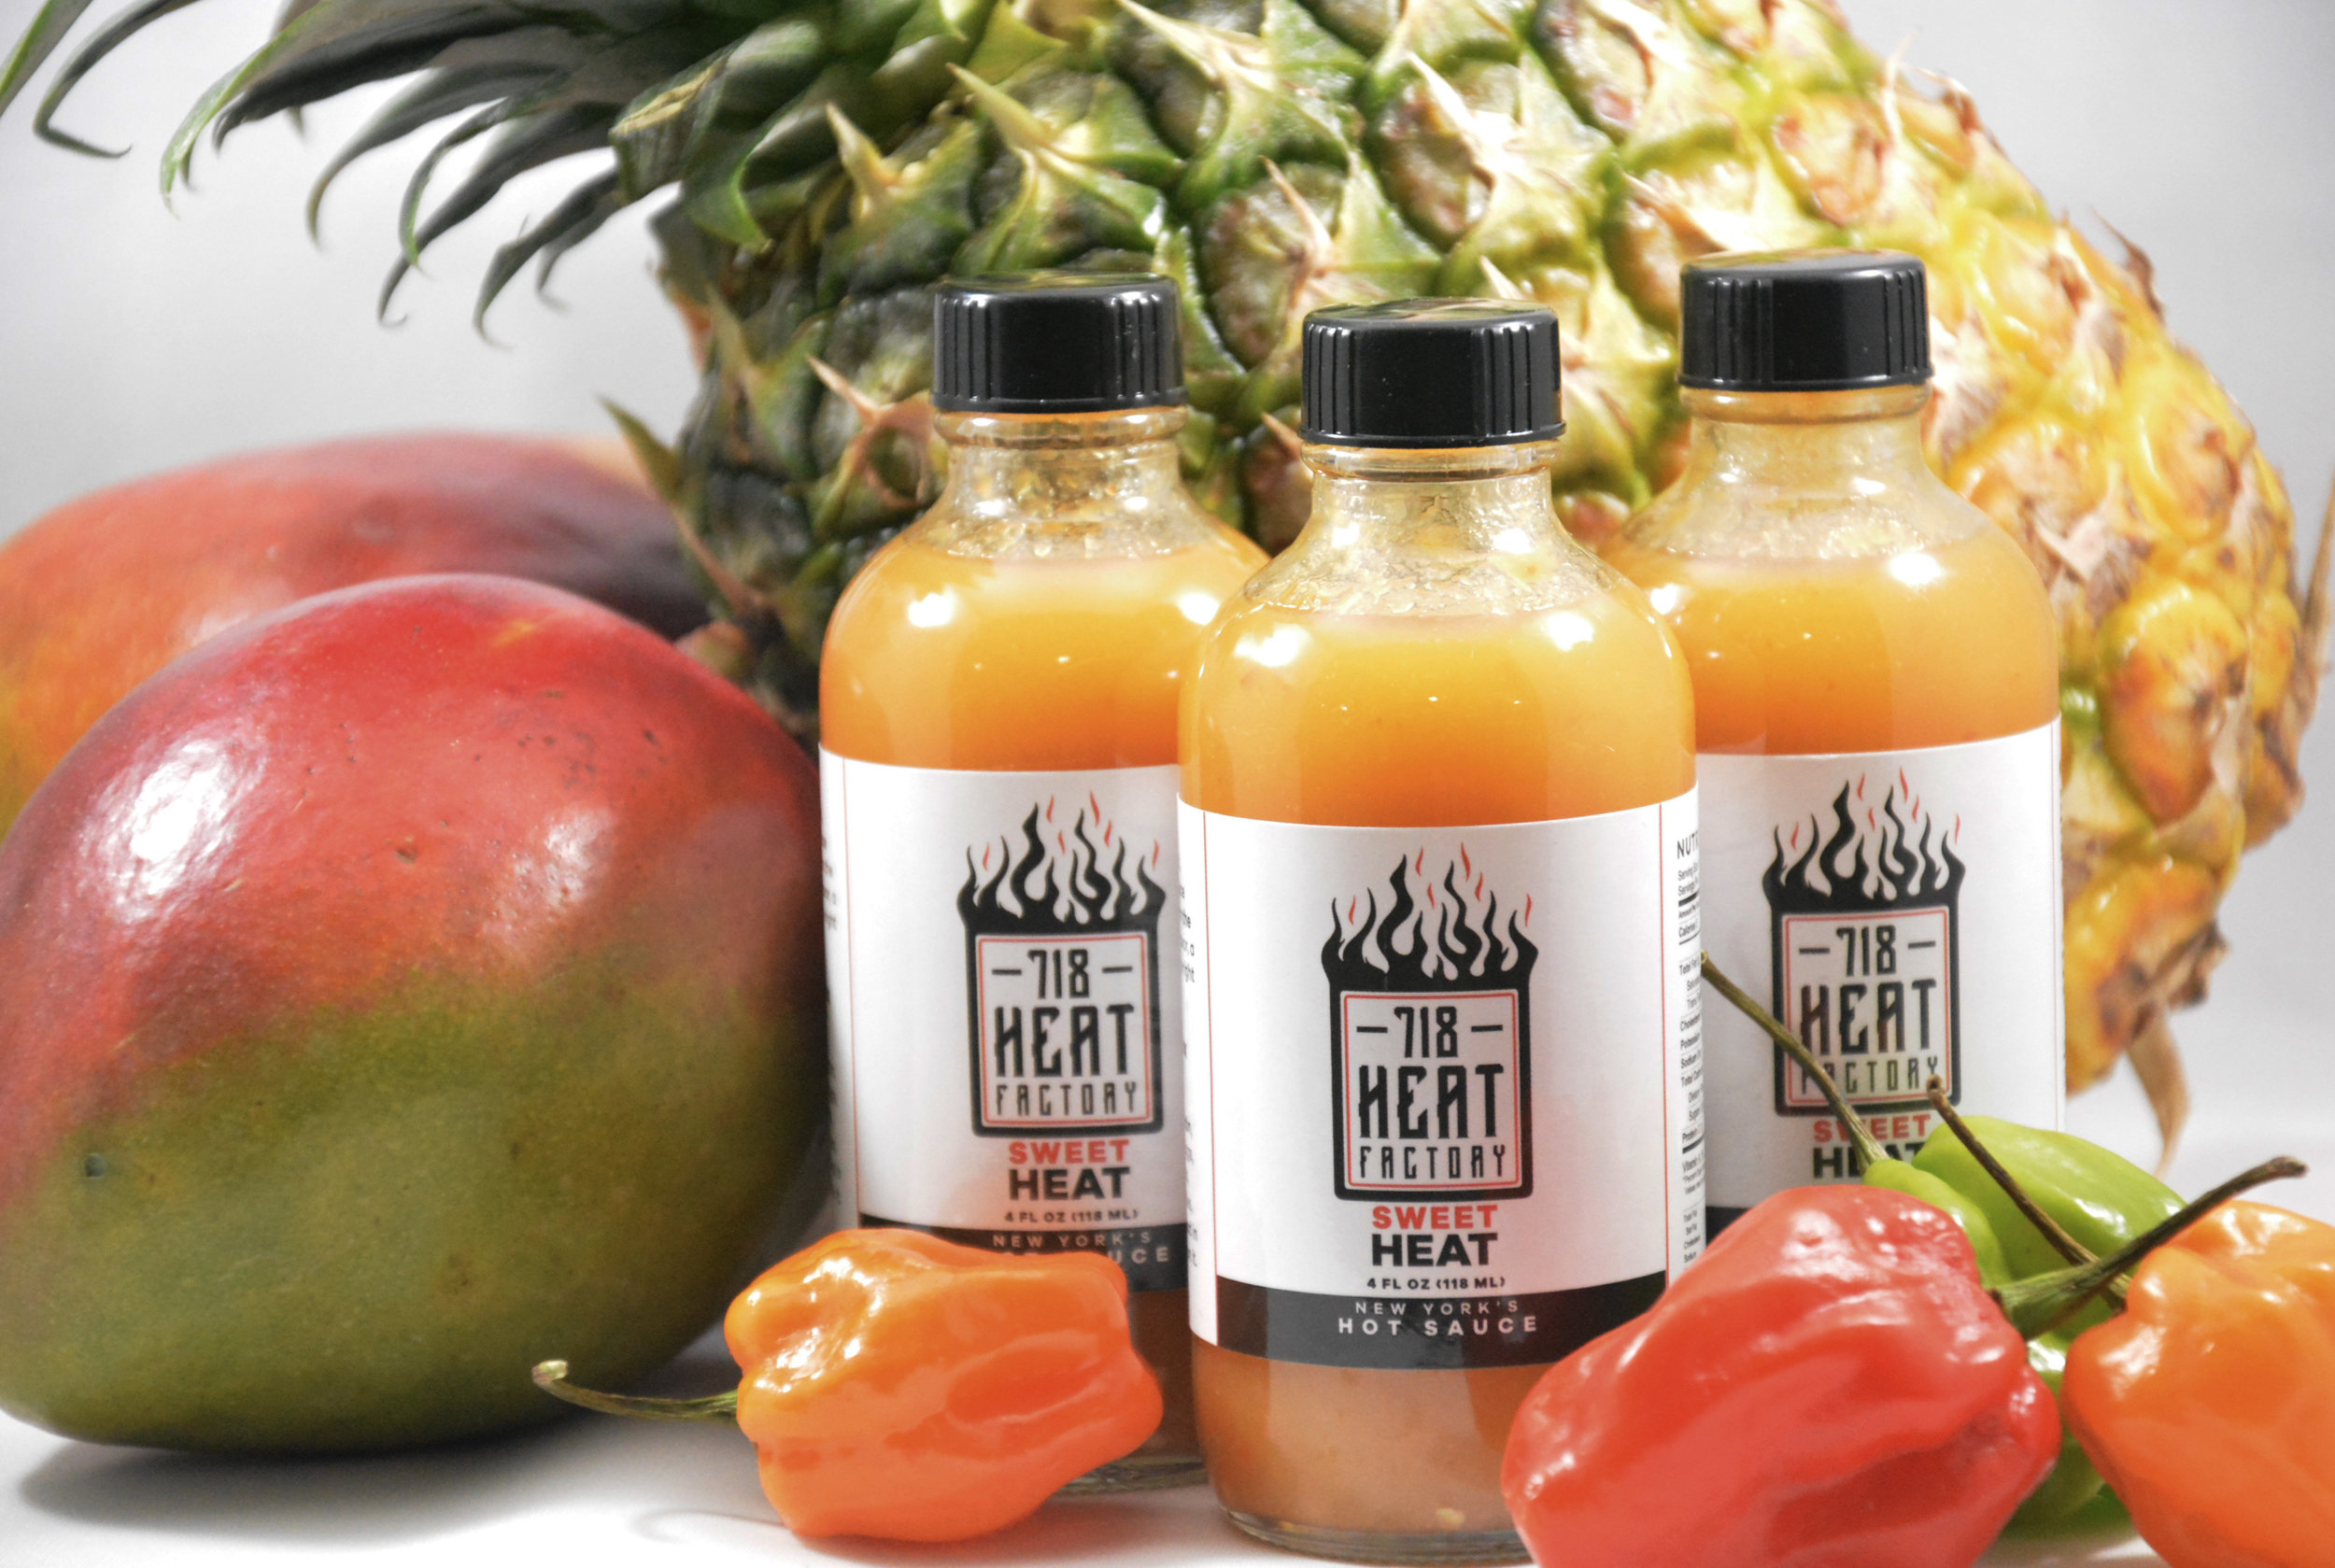 Bring The Heat - Our hot sauces are antioxidant rich, nutrient based, and hand made in a commercial kitchen in New York City by two native New Yorkers (representing Brooklyn and the Bronx). This unique collaboration is as original as the hot sauces themselves.